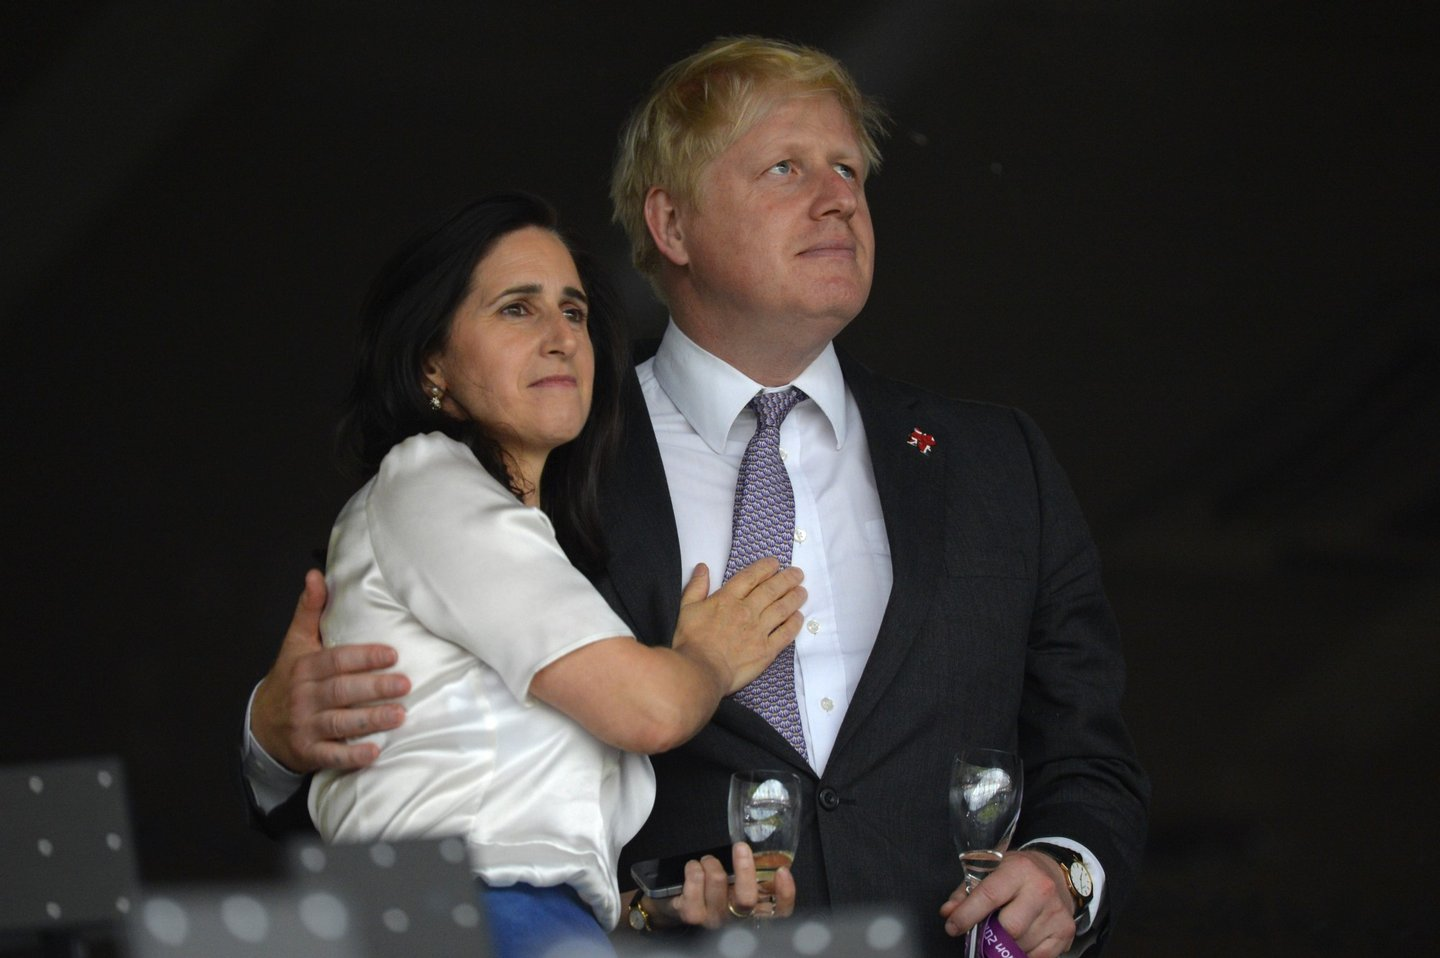 London's Mayor Boris Johnson (R) waits with his wife Marina Wheeler (L) prior to the start of the opening ceremony of the London 2012 Olympic Games on July 27, 2012 at the Olympic Stadium in London. AFP PHOTO / ODD ANDERSEN (Photo credit should read /AFP/GettyImages)